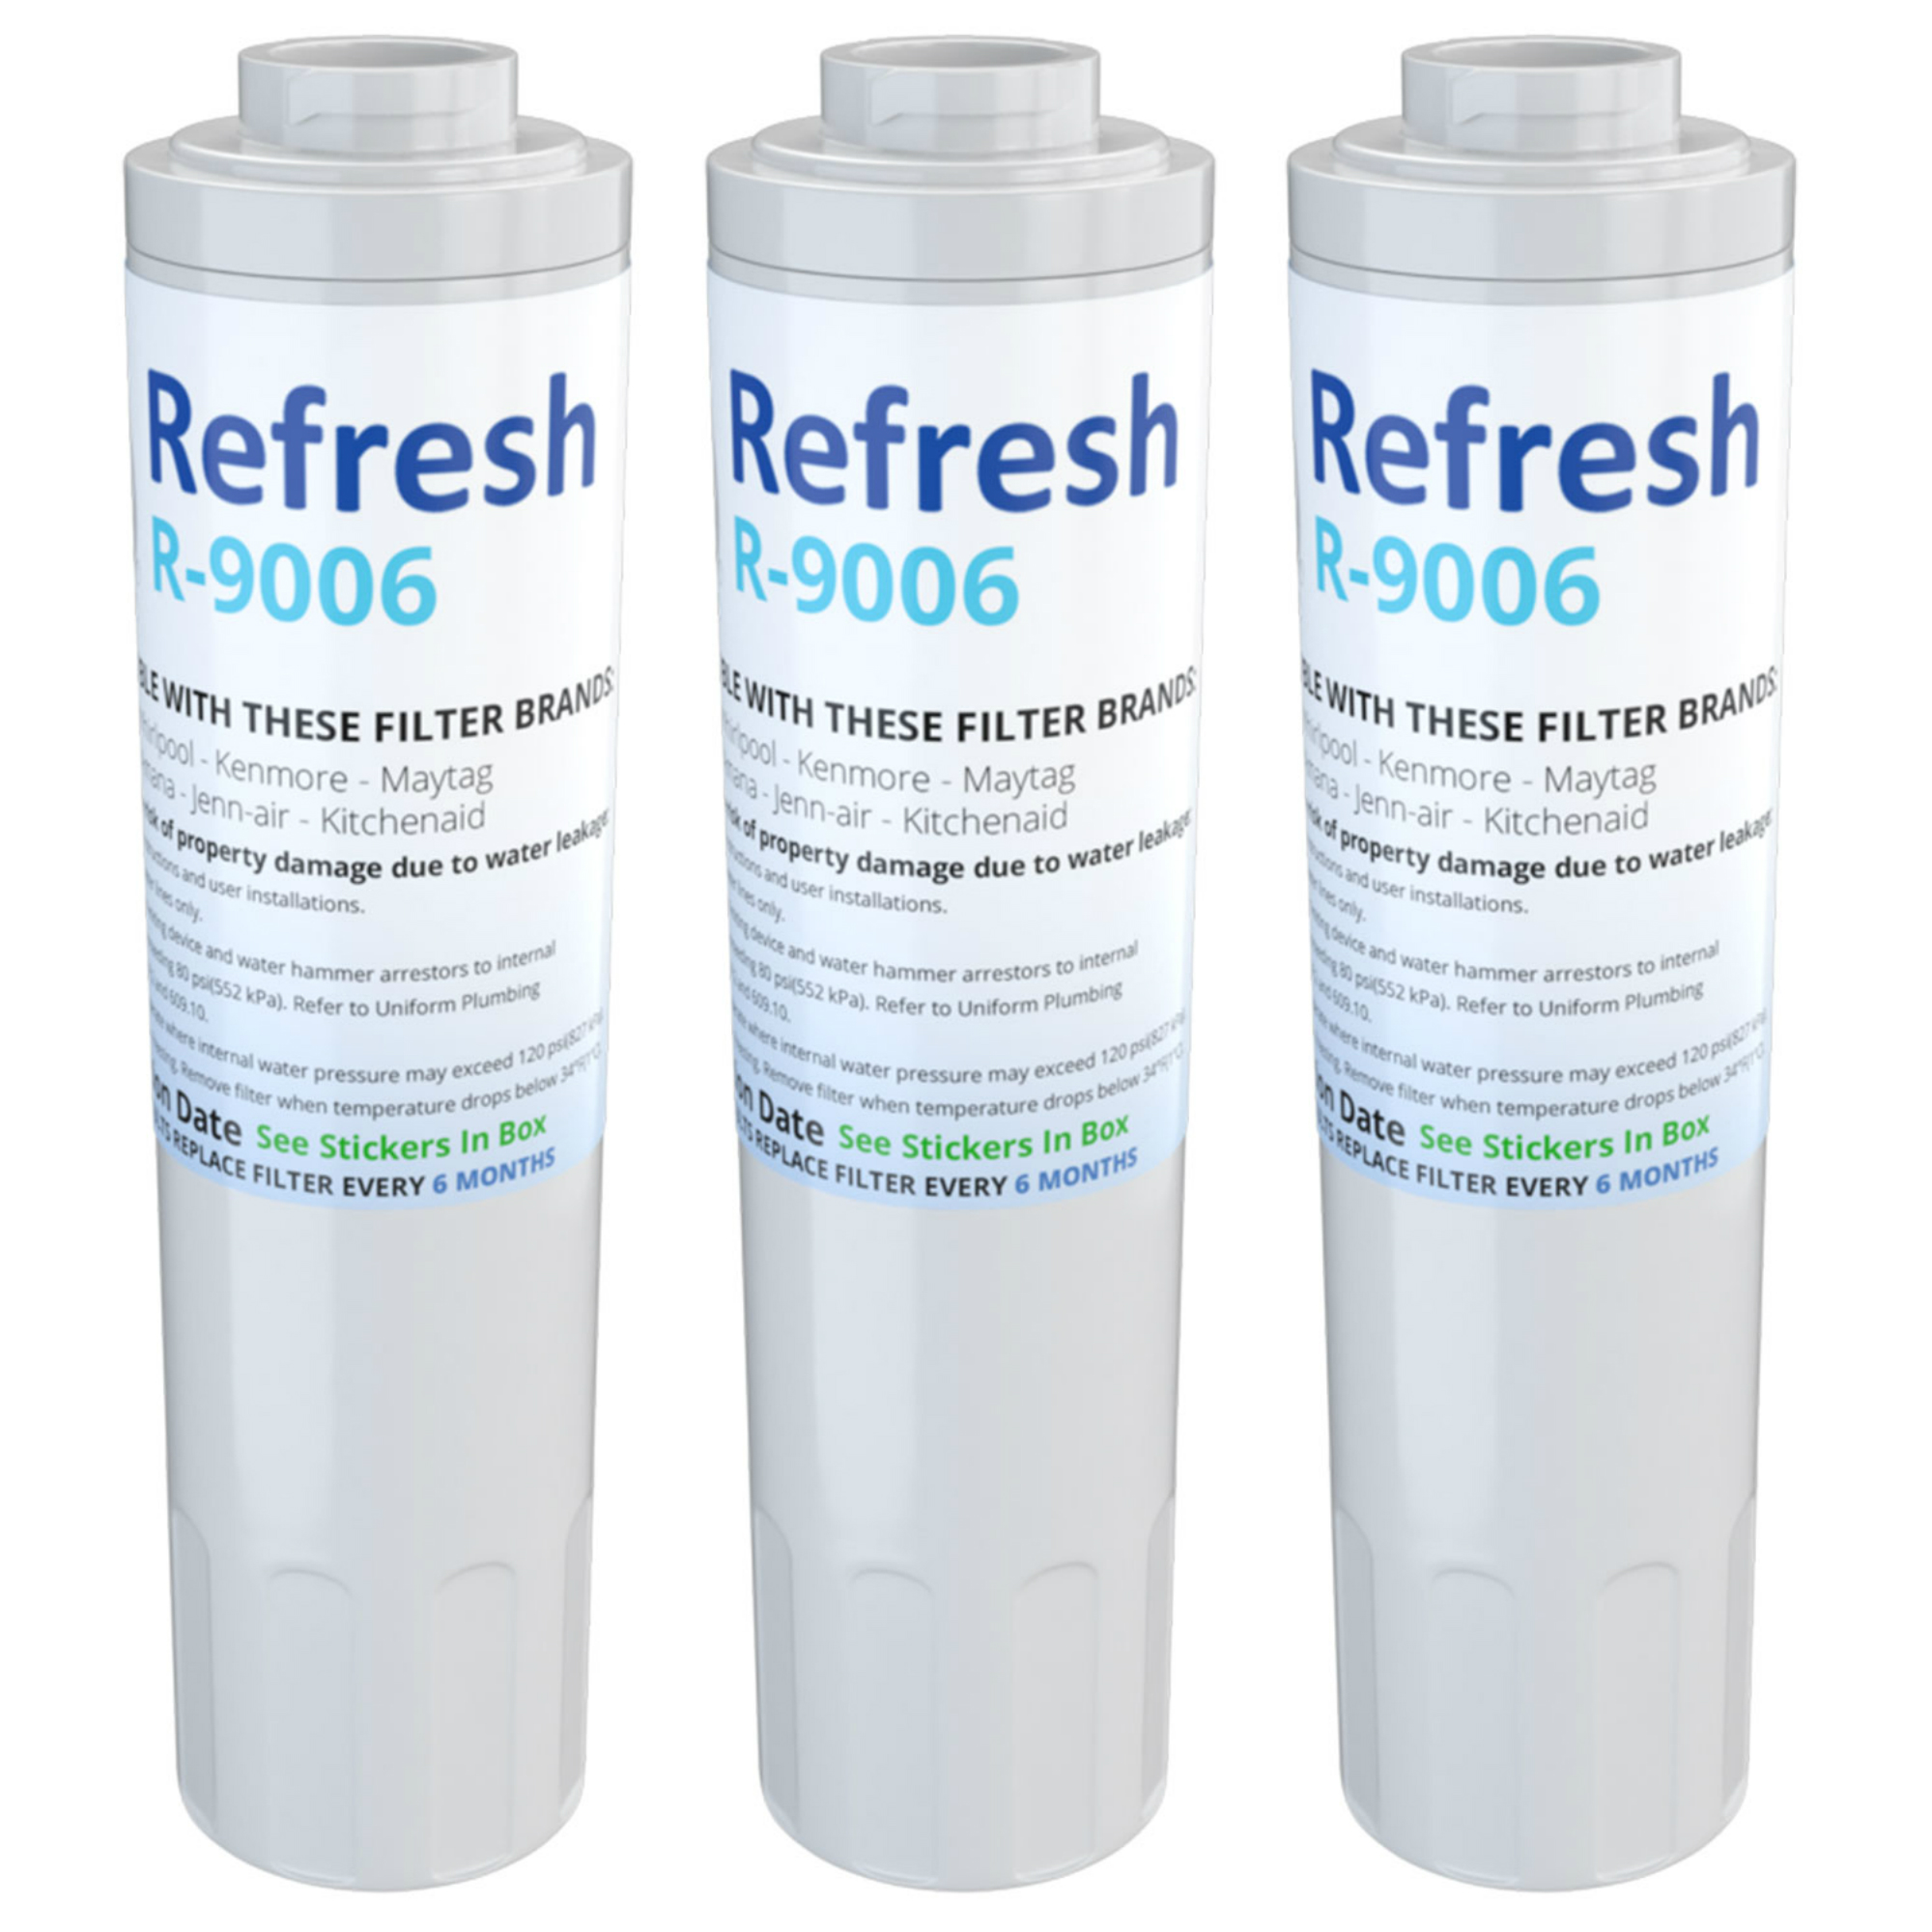 Kitchenaid Krff302ess Details About Refresh Water Filter Fits Kitchenaid Krff302ess Refrigerators 3pack